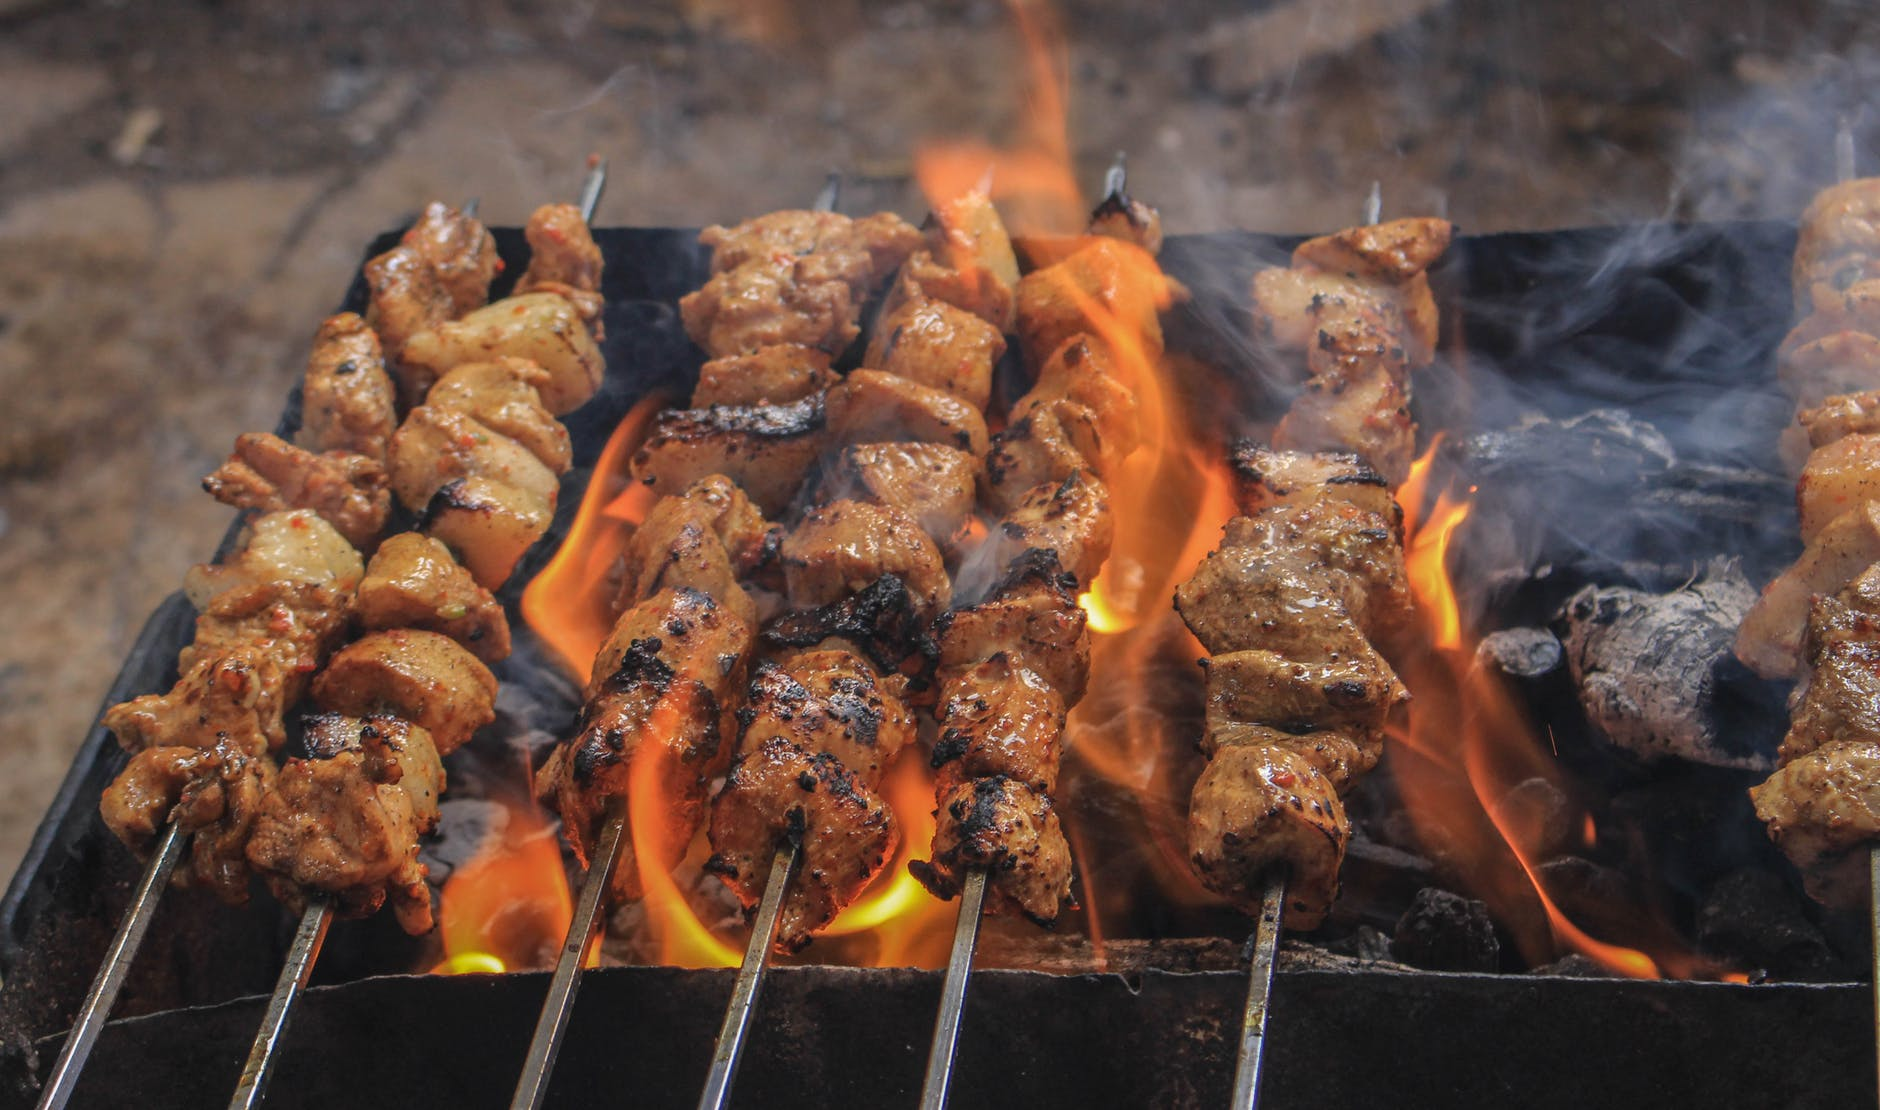 grilled meats on skewers